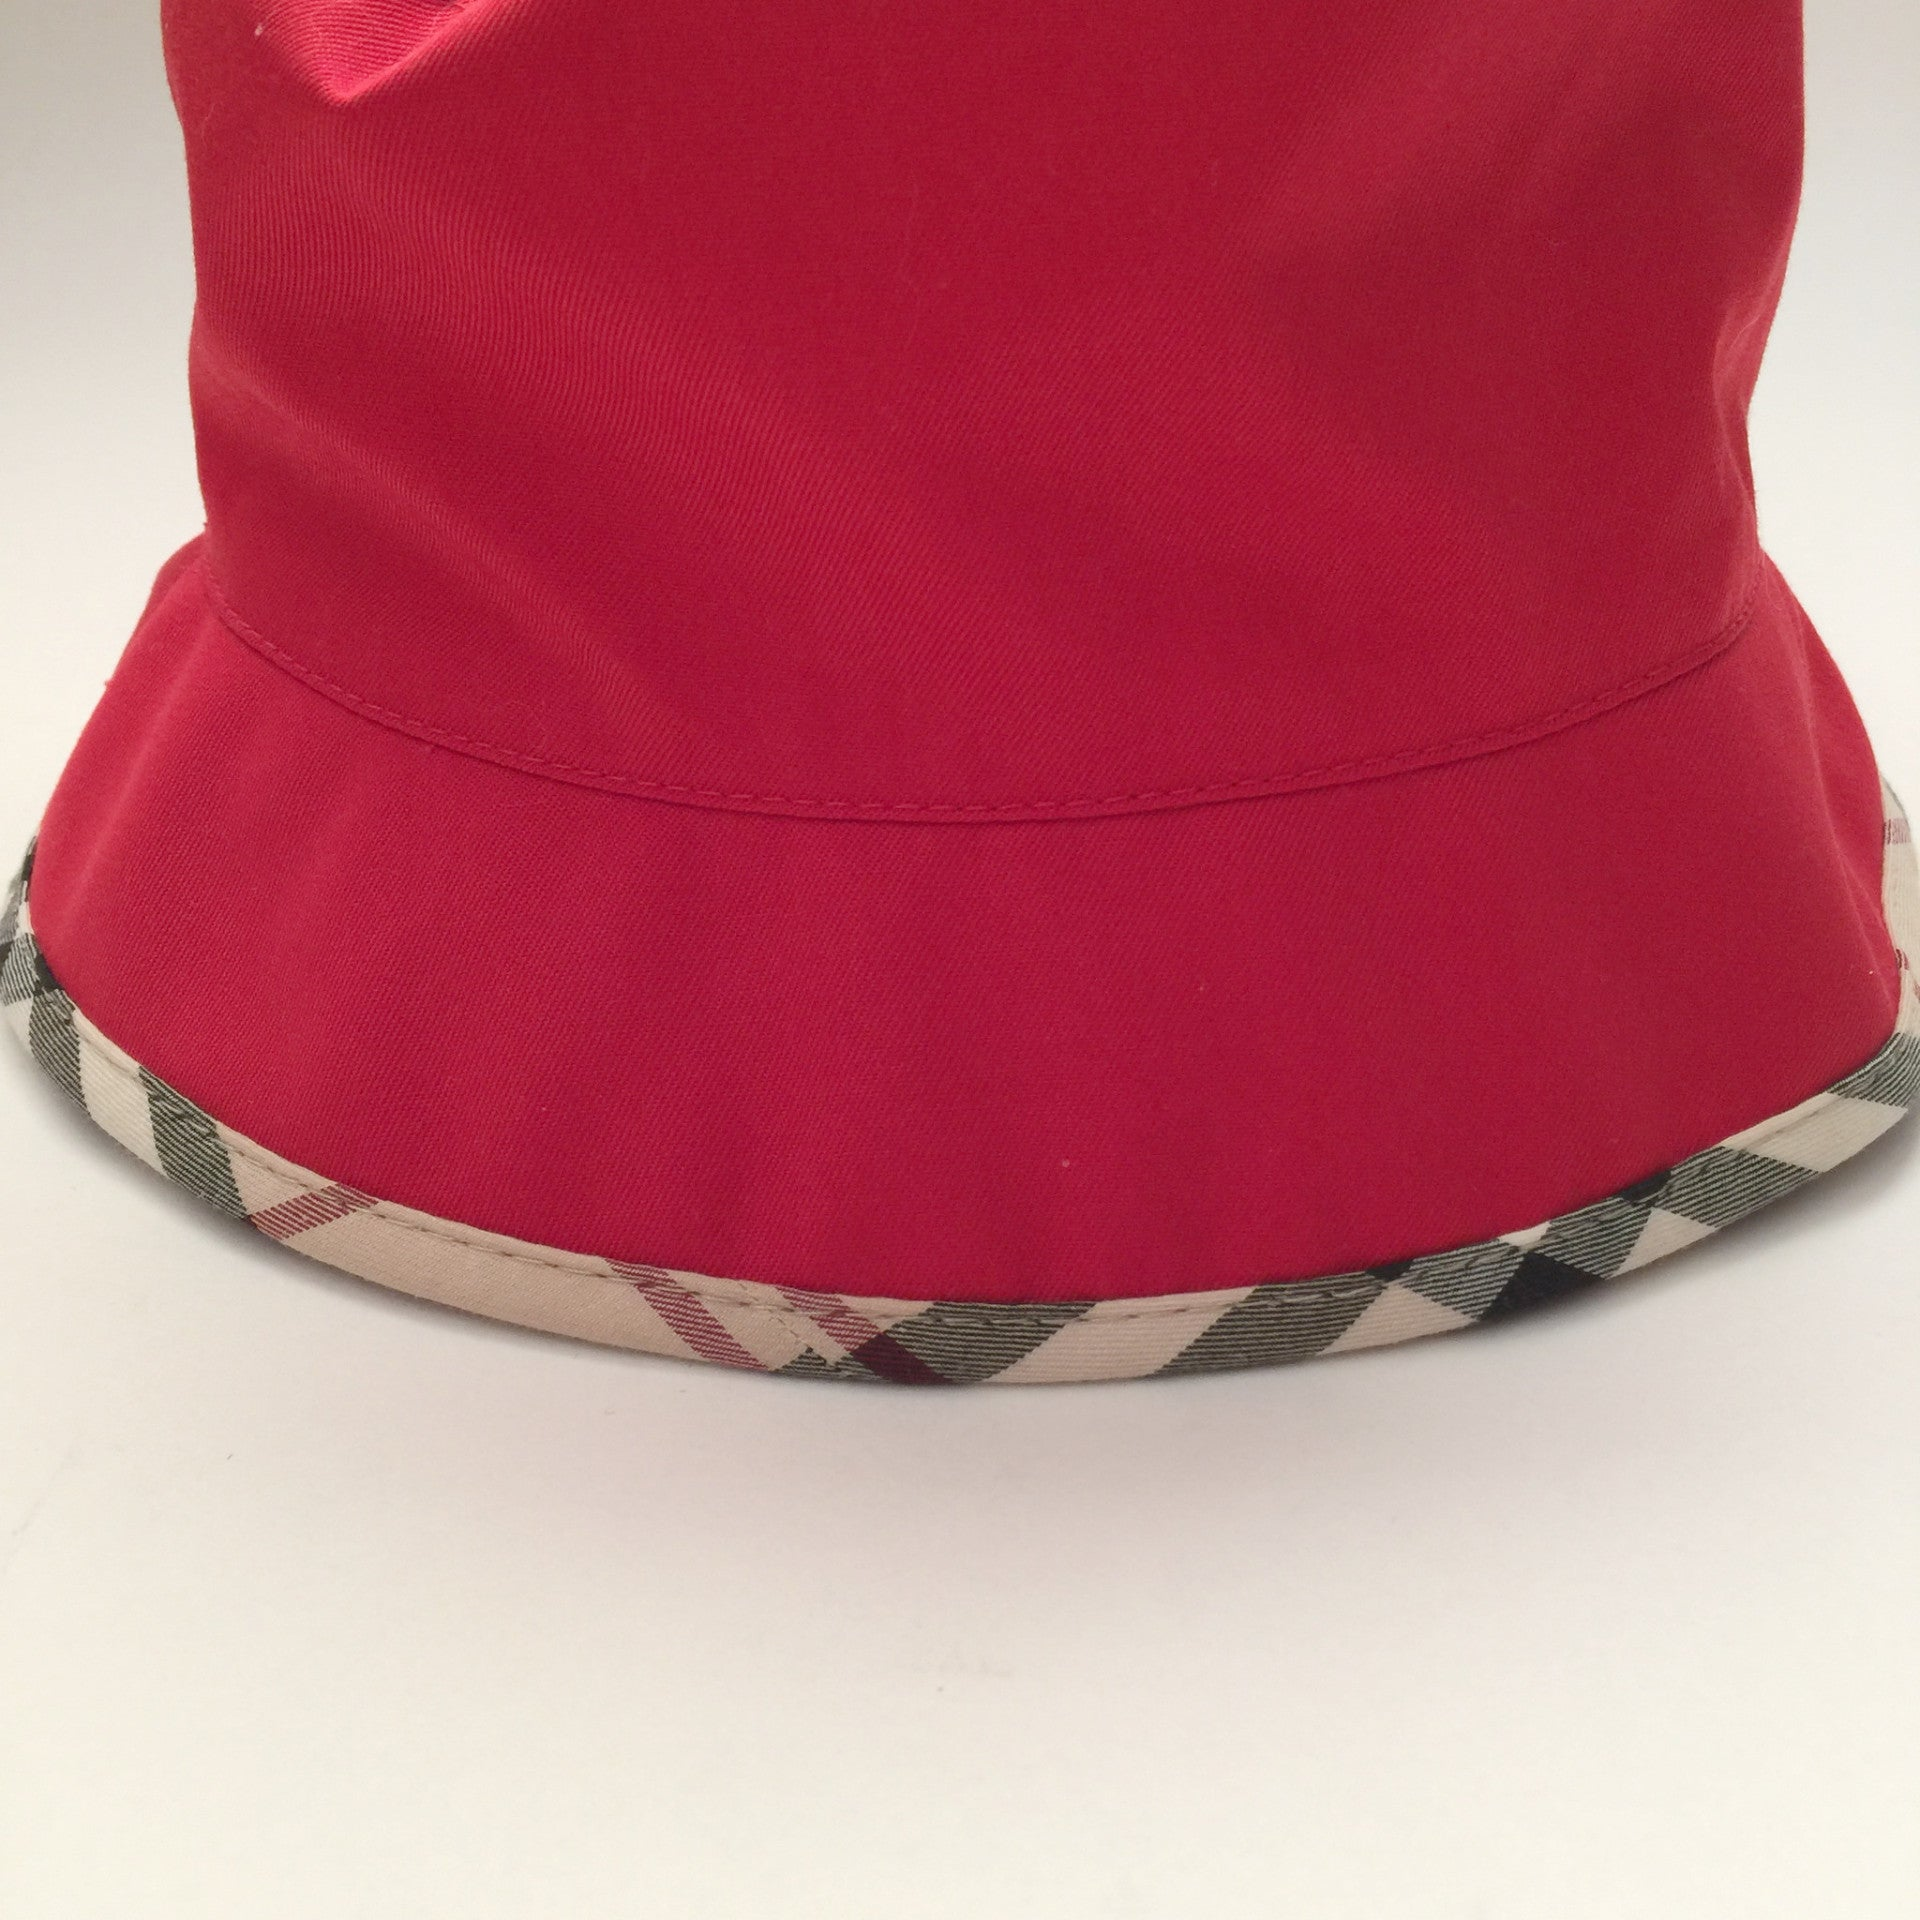 Authentic BURBERRY Red Bucket Hat